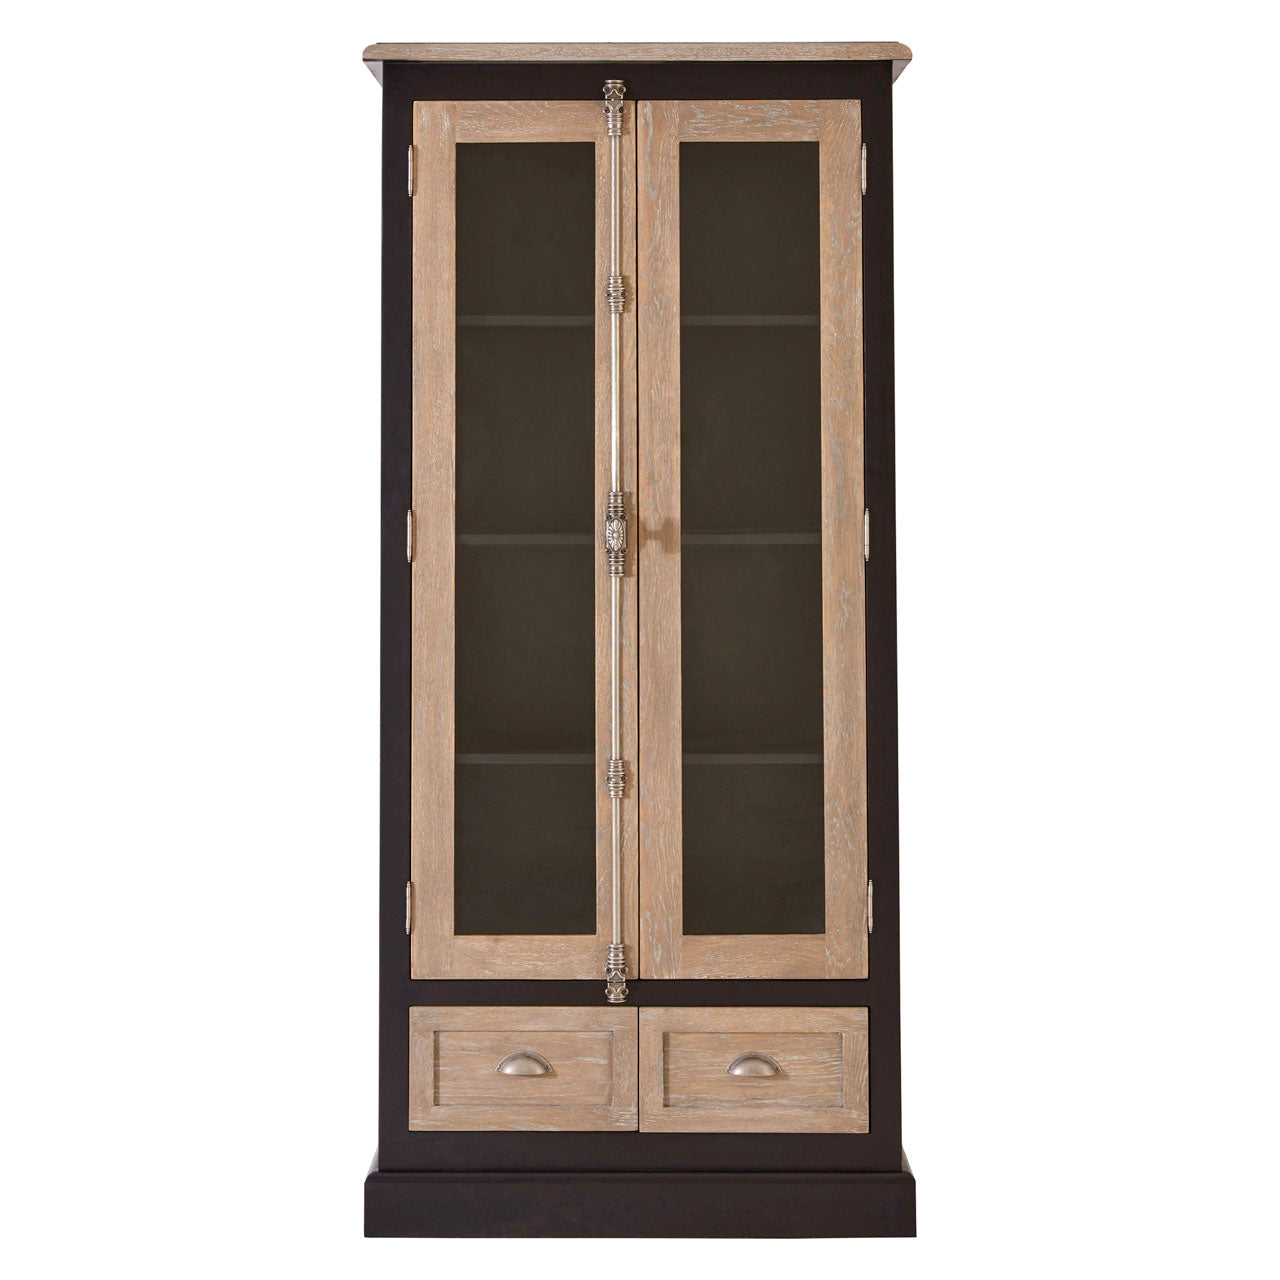 Kensington Townhouse Cabinet